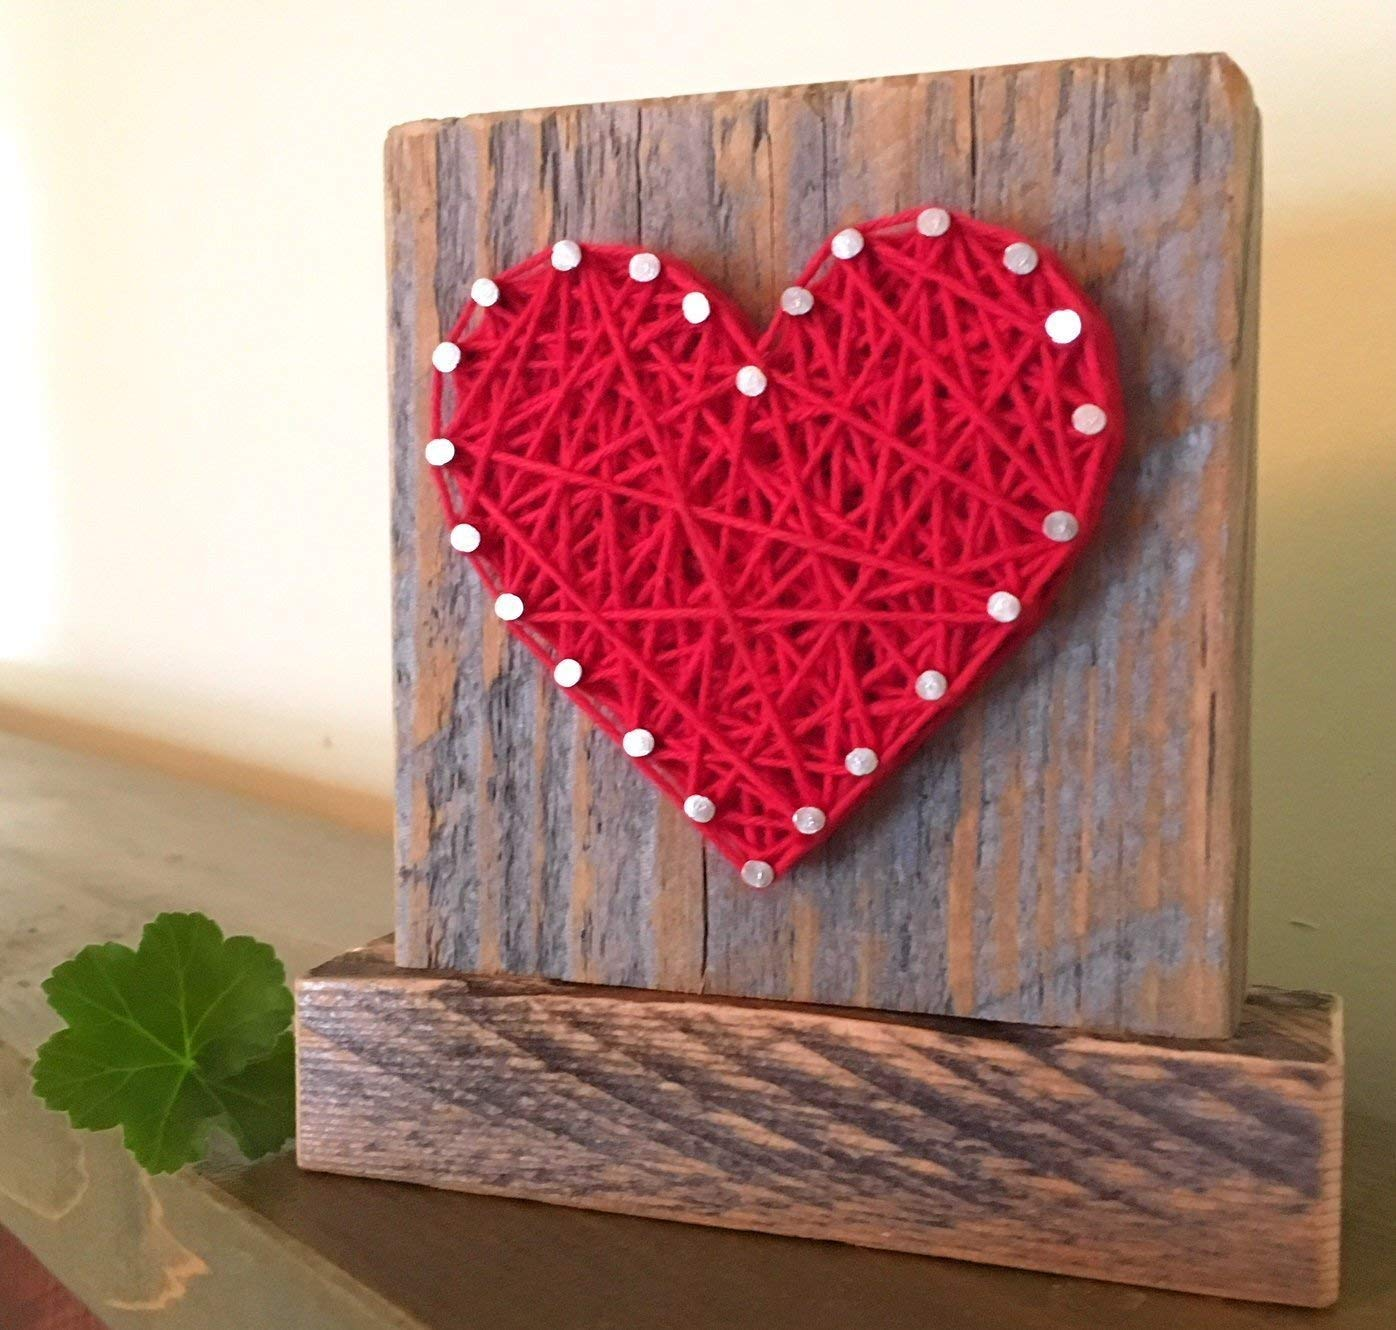 Sweet & small freestanding wooden red string art heart block sign. Perfect for home accents, Wedding favors, Anniversaries, housewarming, teacher, congratulations & just because. by Nail it Art